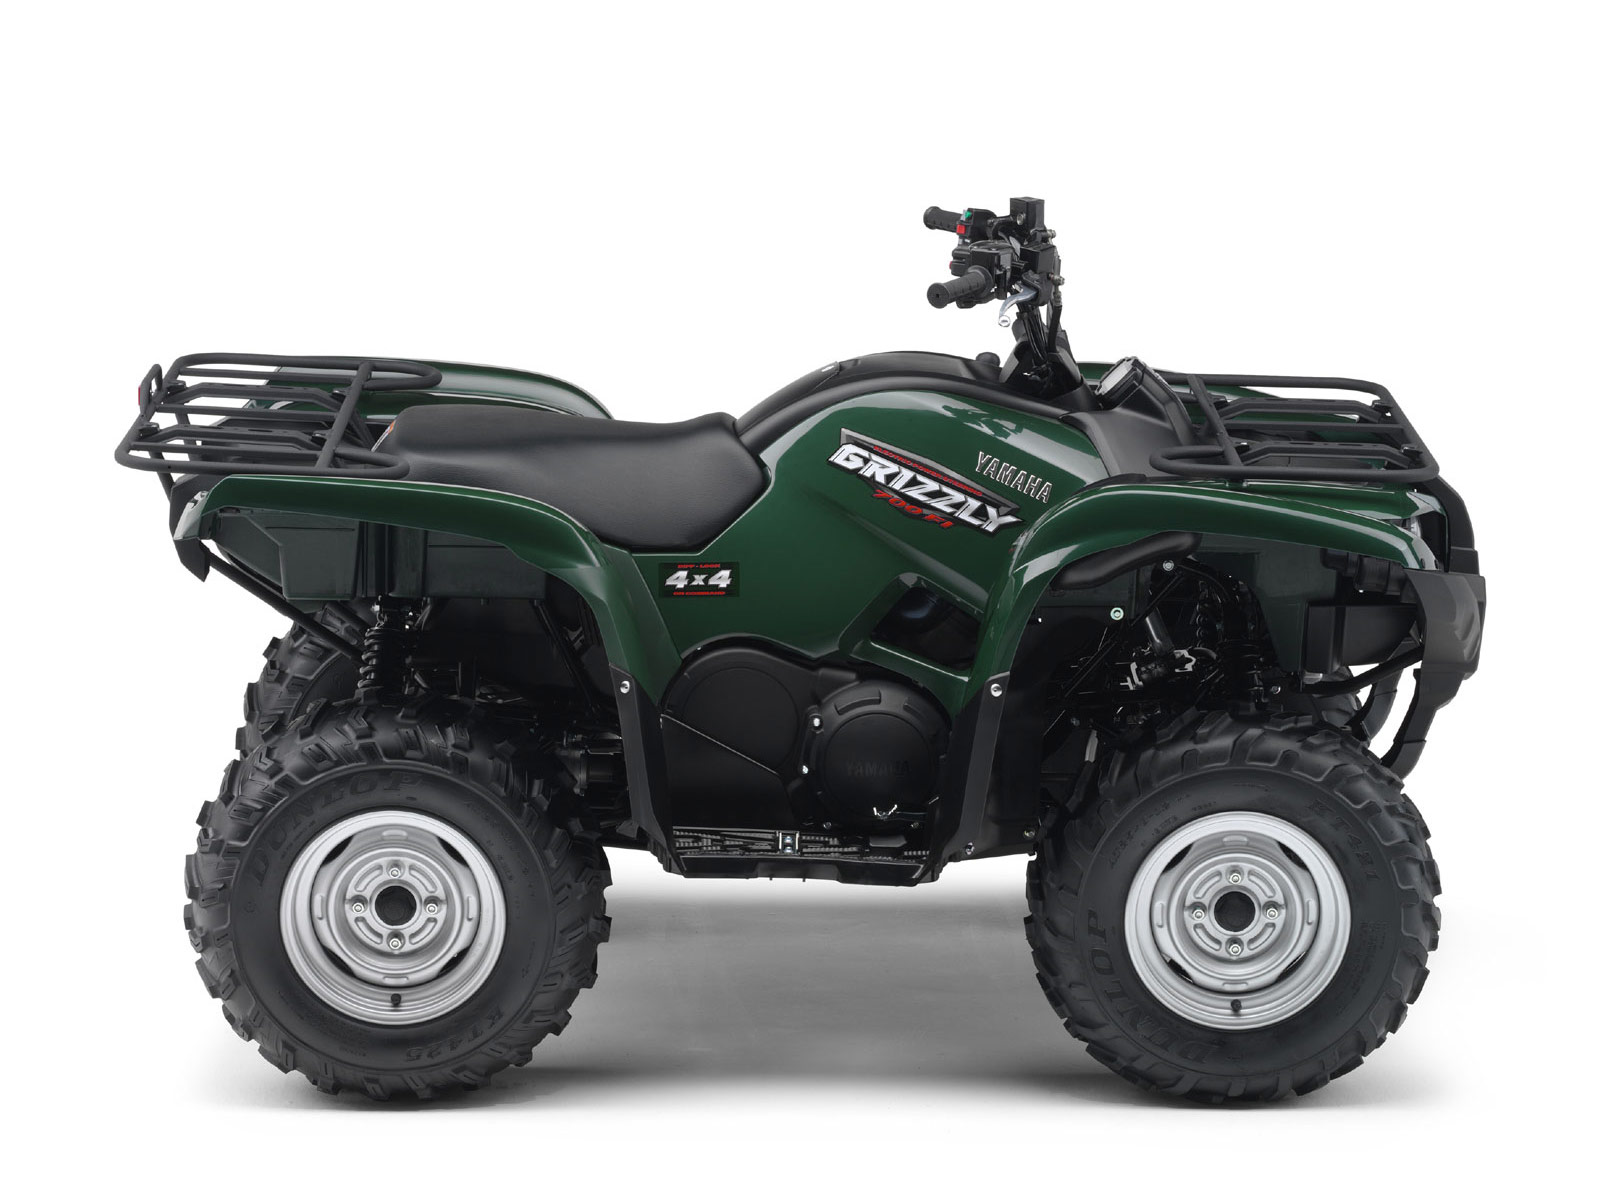 2009 grizzly 700 fi yamaha atv pictures specifications for Yamaha grizzly atv